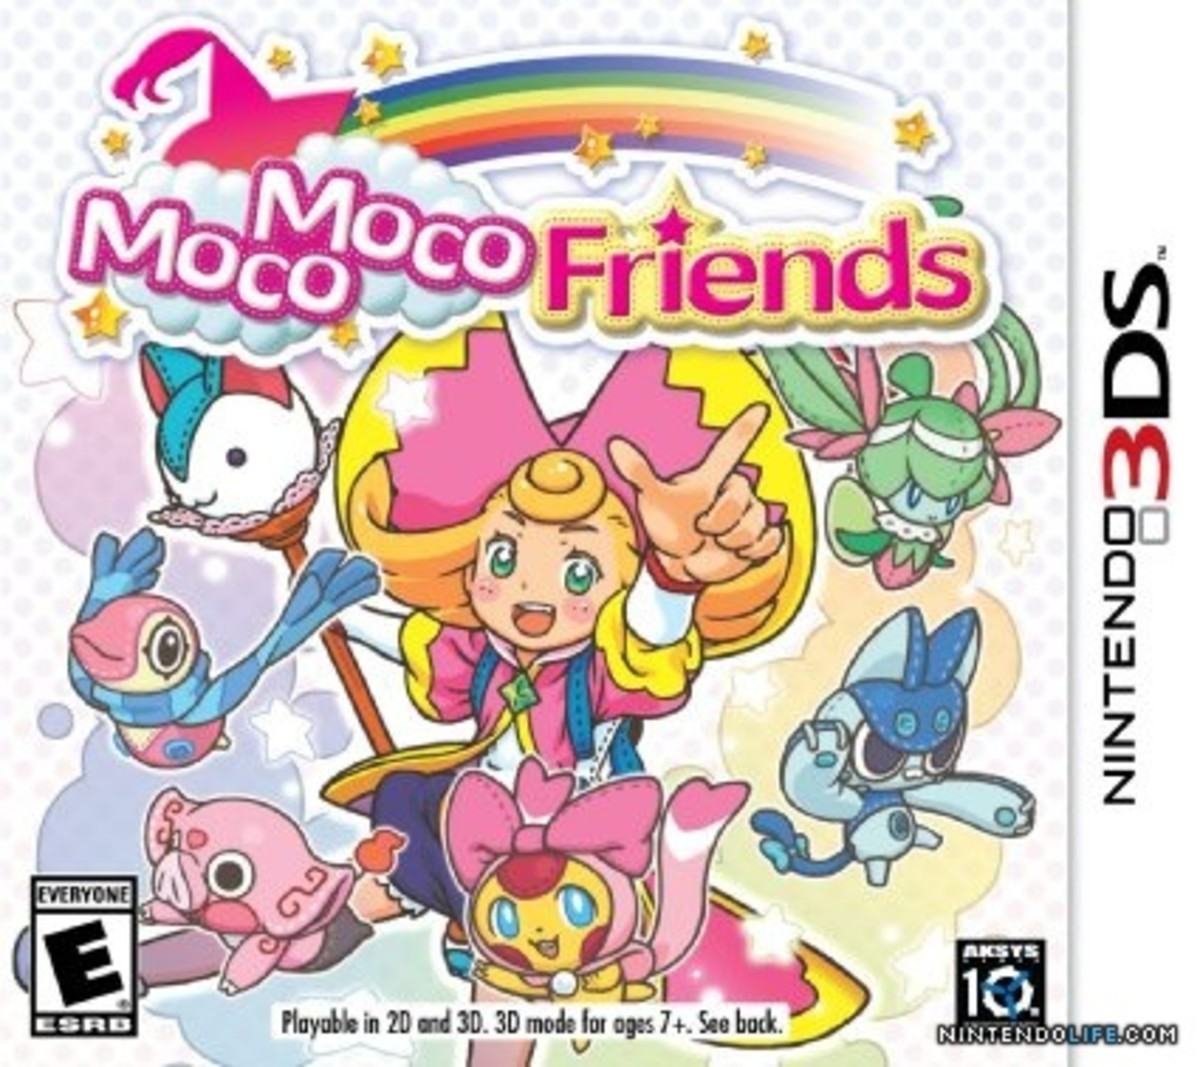 Moco Moco Friends – Nintendo 3DS Game Review